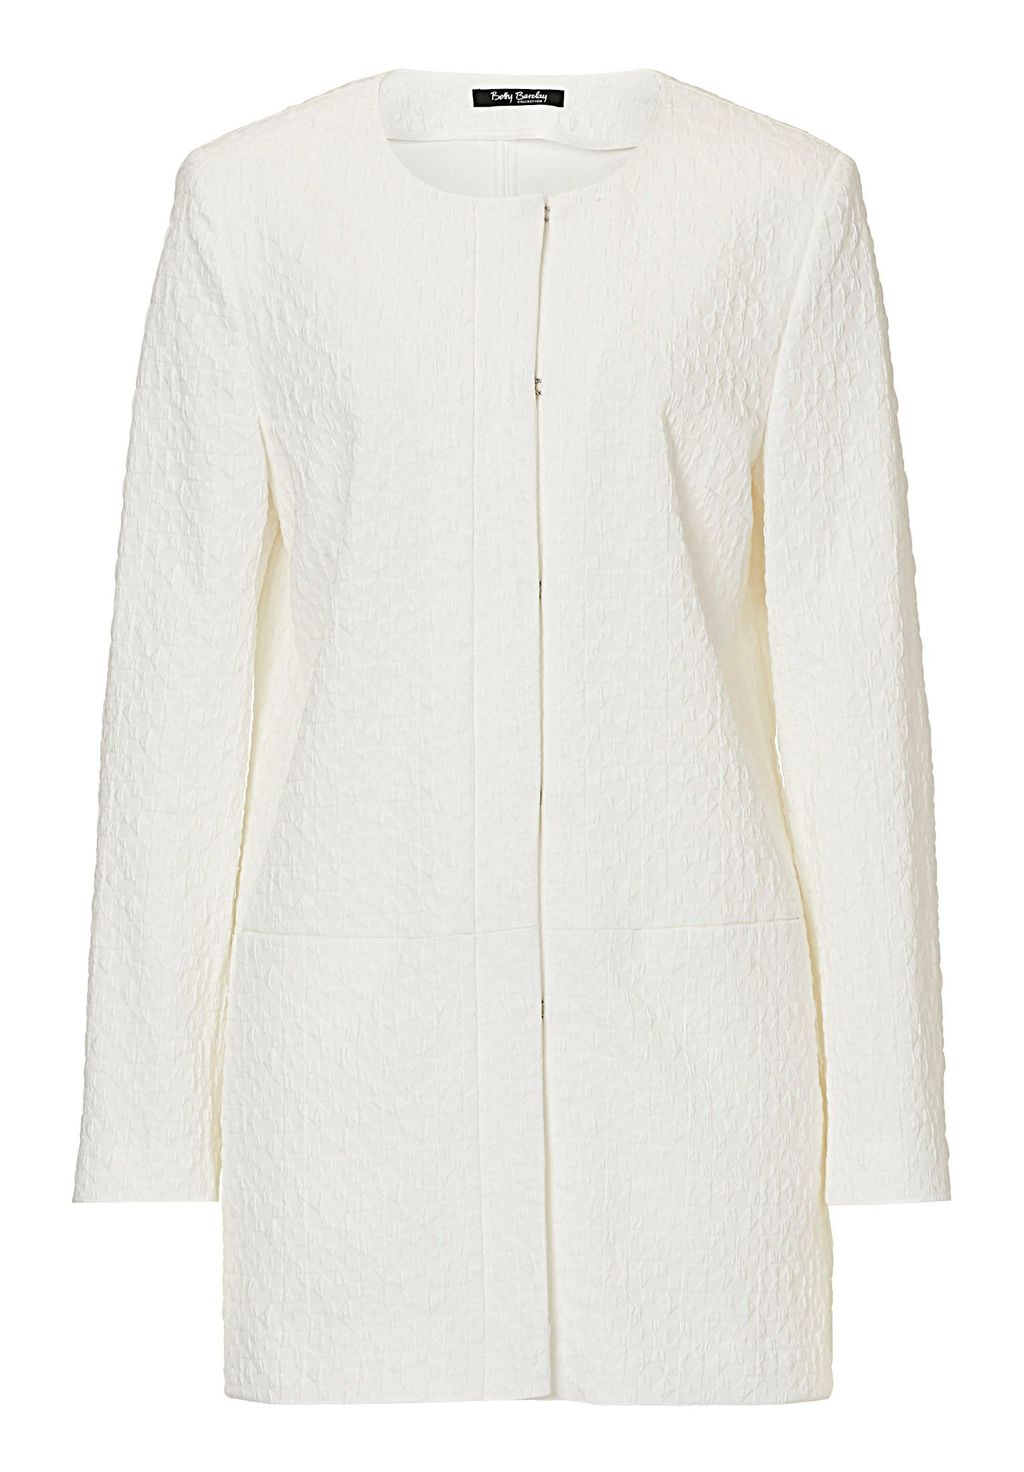 Long Textured Jacket, Off White - pattern: plain; style: single breasted blazer; collar: round collar/collarless; length: below the bottom; predominant colour: ivory/cream; occasions: casual, creative work; fit: straight cut (boxy); fibres: cotton - stretch; sleeve length: long sleeve; sleeve style: standard; collar break: high; pattern type: fabric; texture group: woven light midweight; season: s/s 2016; wardrobe: basic